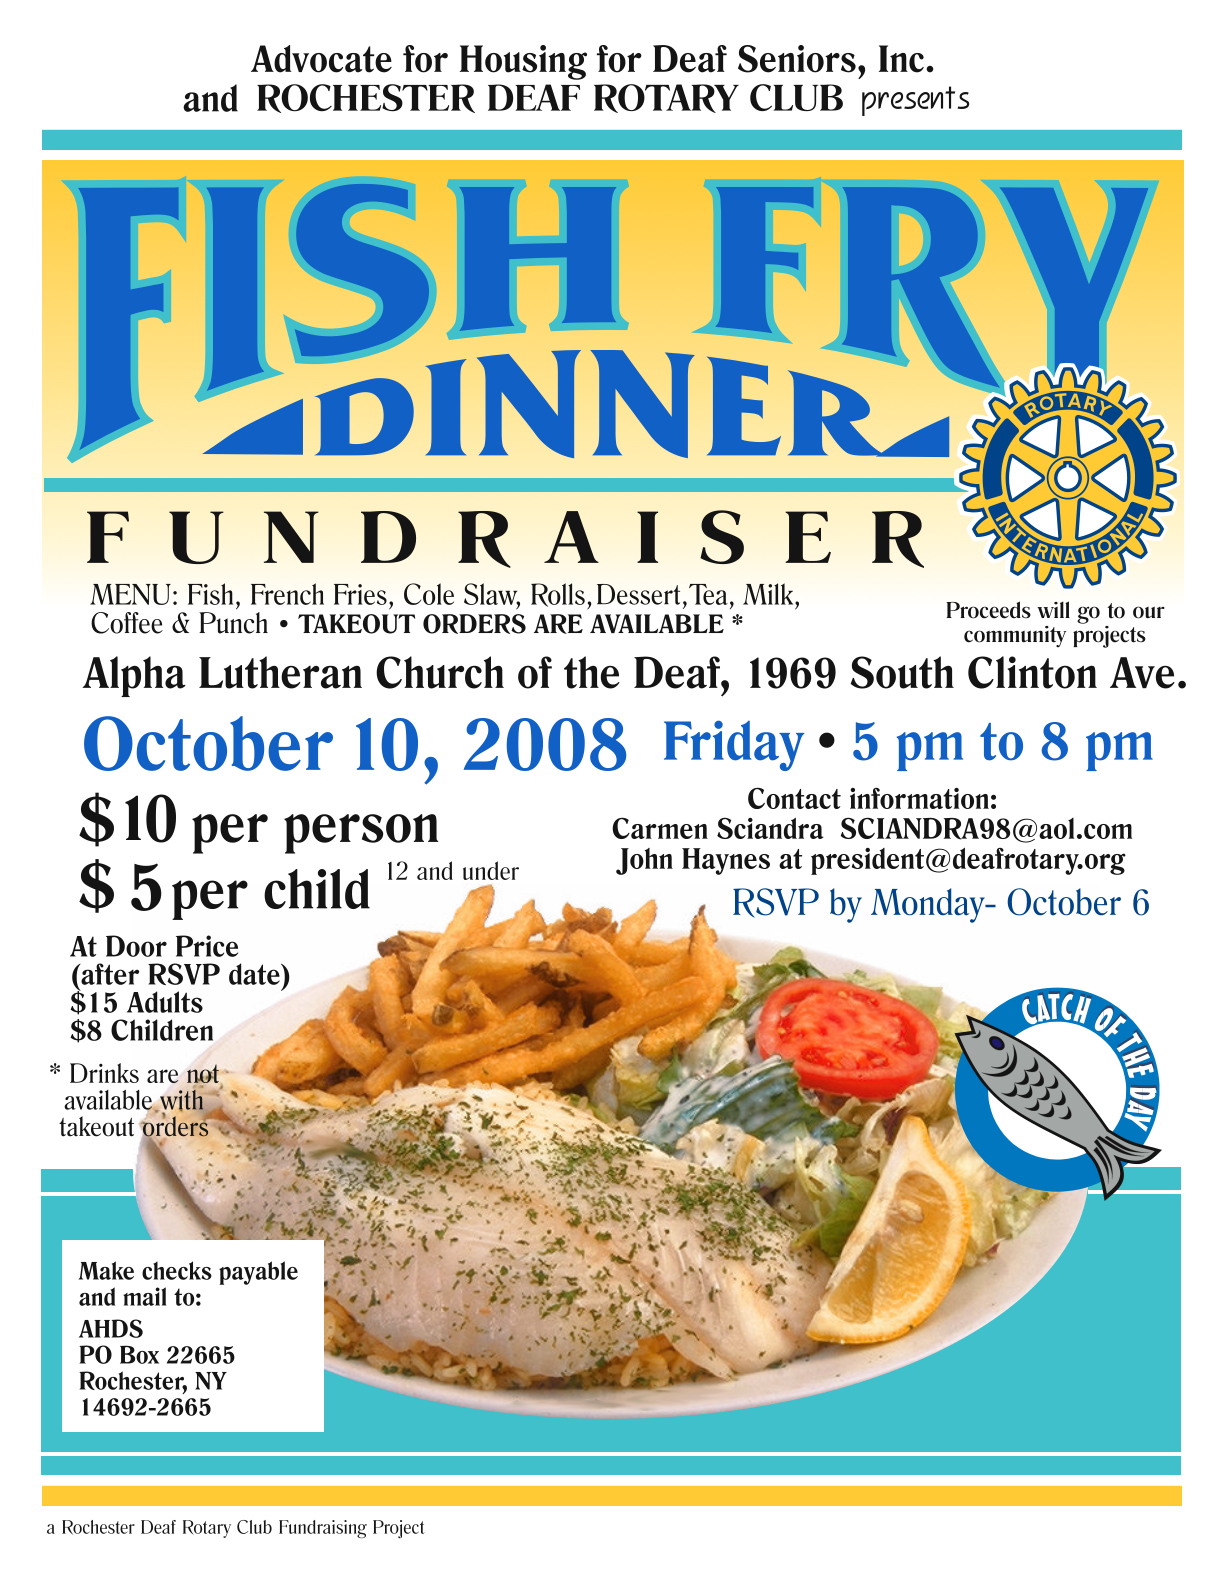 Fish Fry Dinner Event October 10 2008 Deafroc